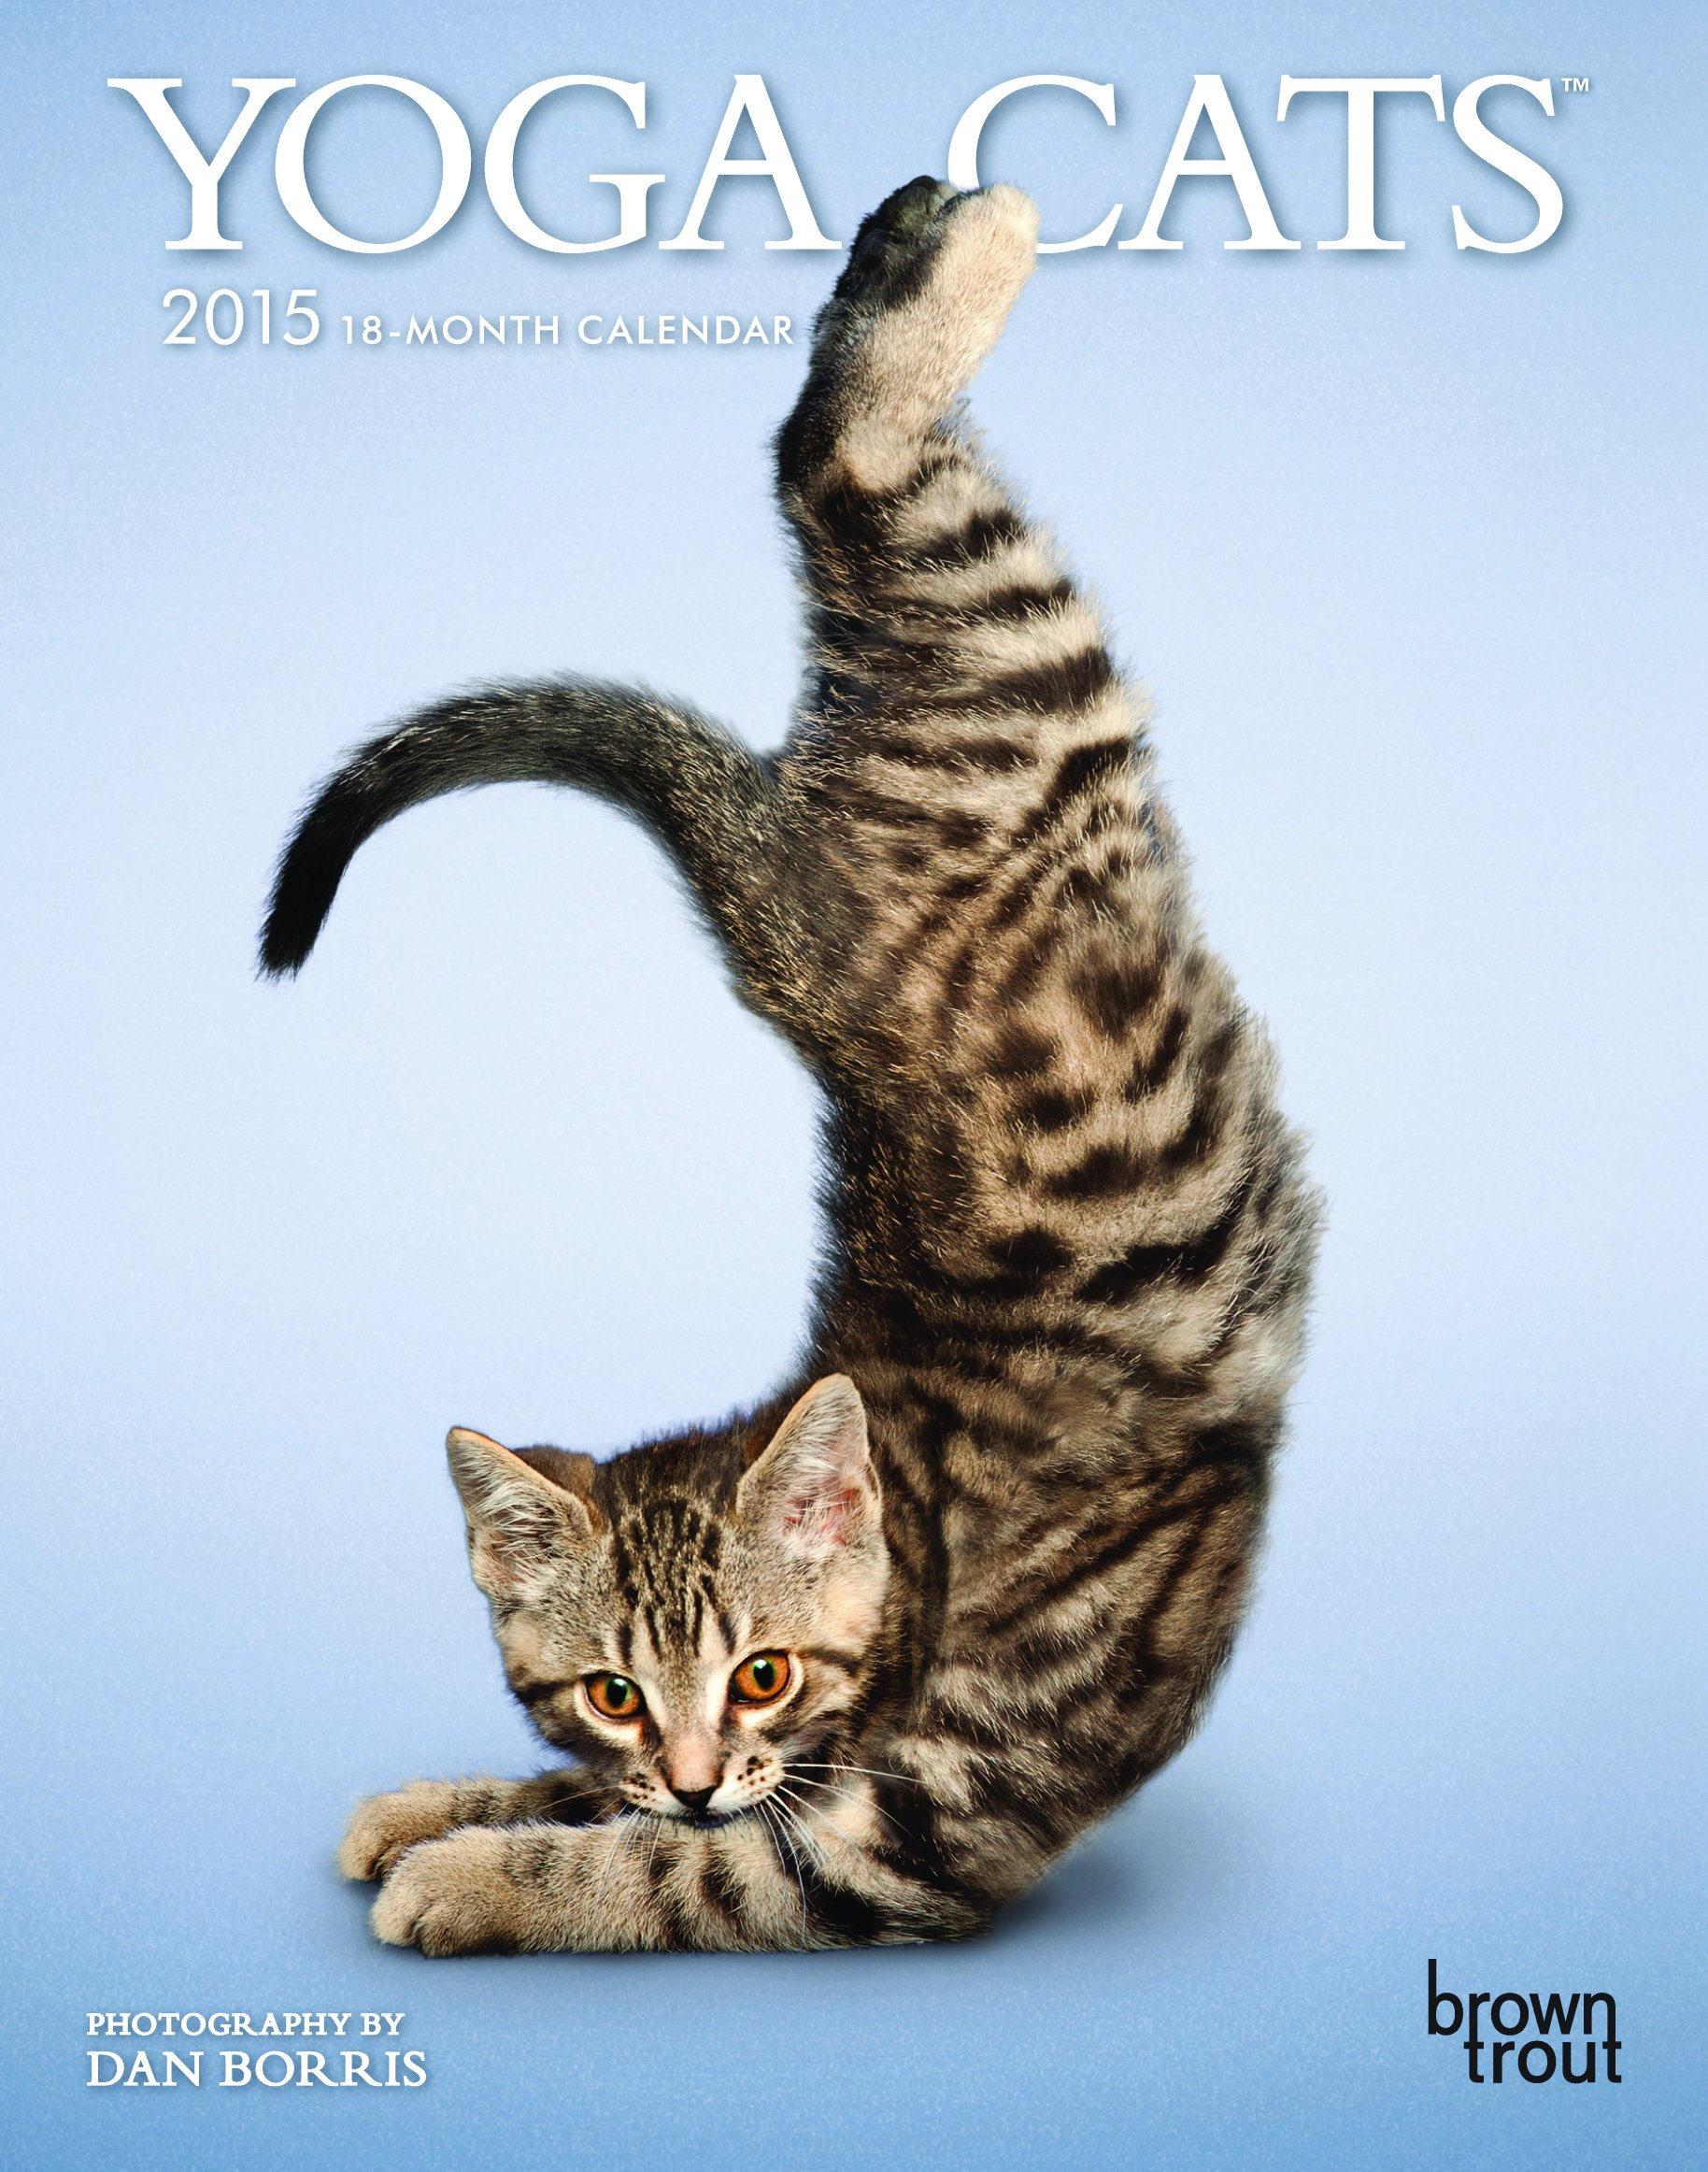 Yoga Cats 2015 Desk Diary: Amazon.es: Browntrout Publishers ...